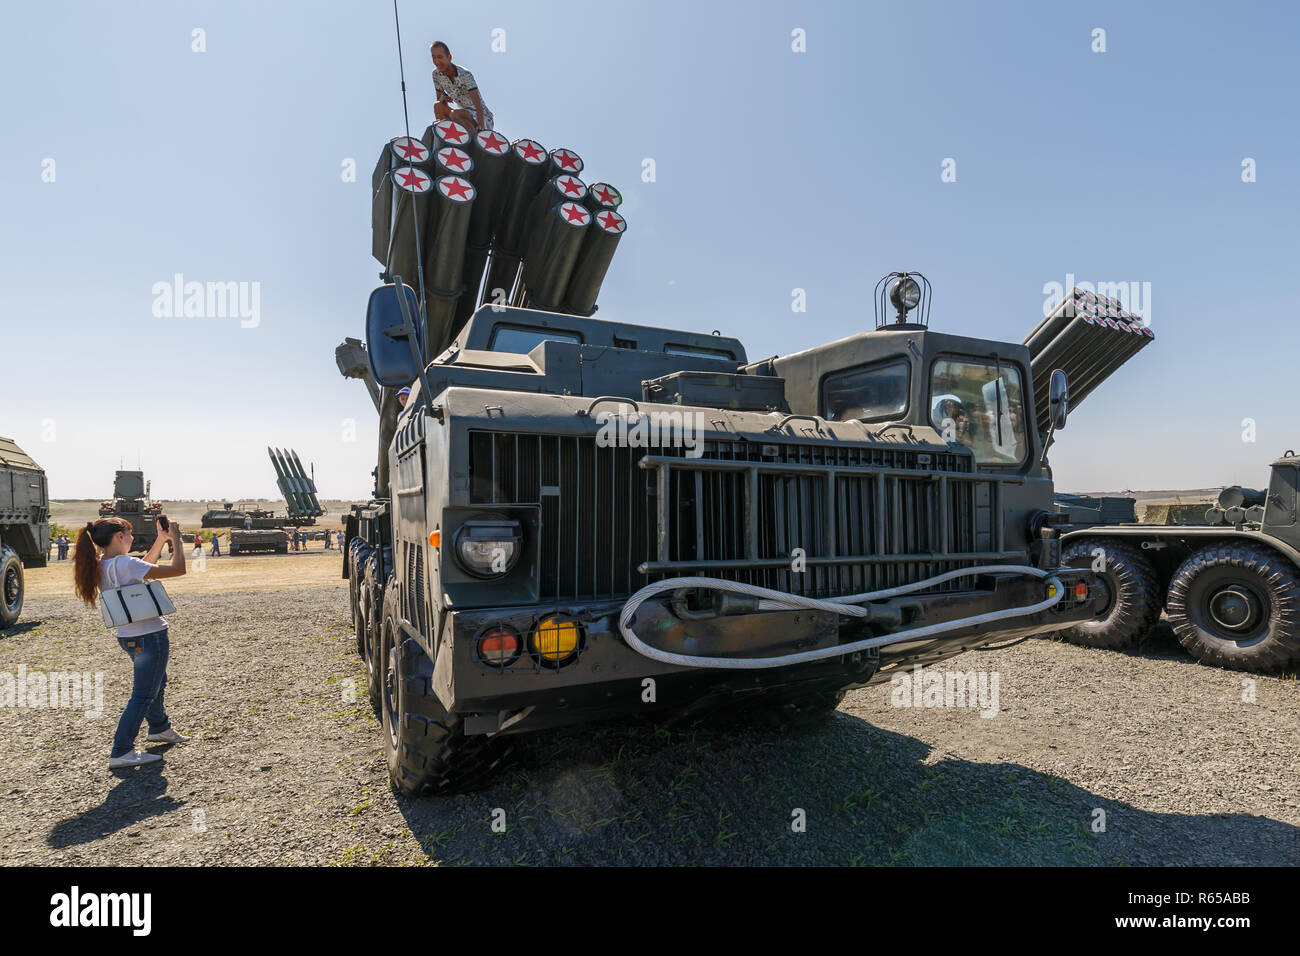 International military technical forum 'ARMY-2018». Soviet heavy multiple rocket launcher 9A52-2 «SMERCH' - Stock Image